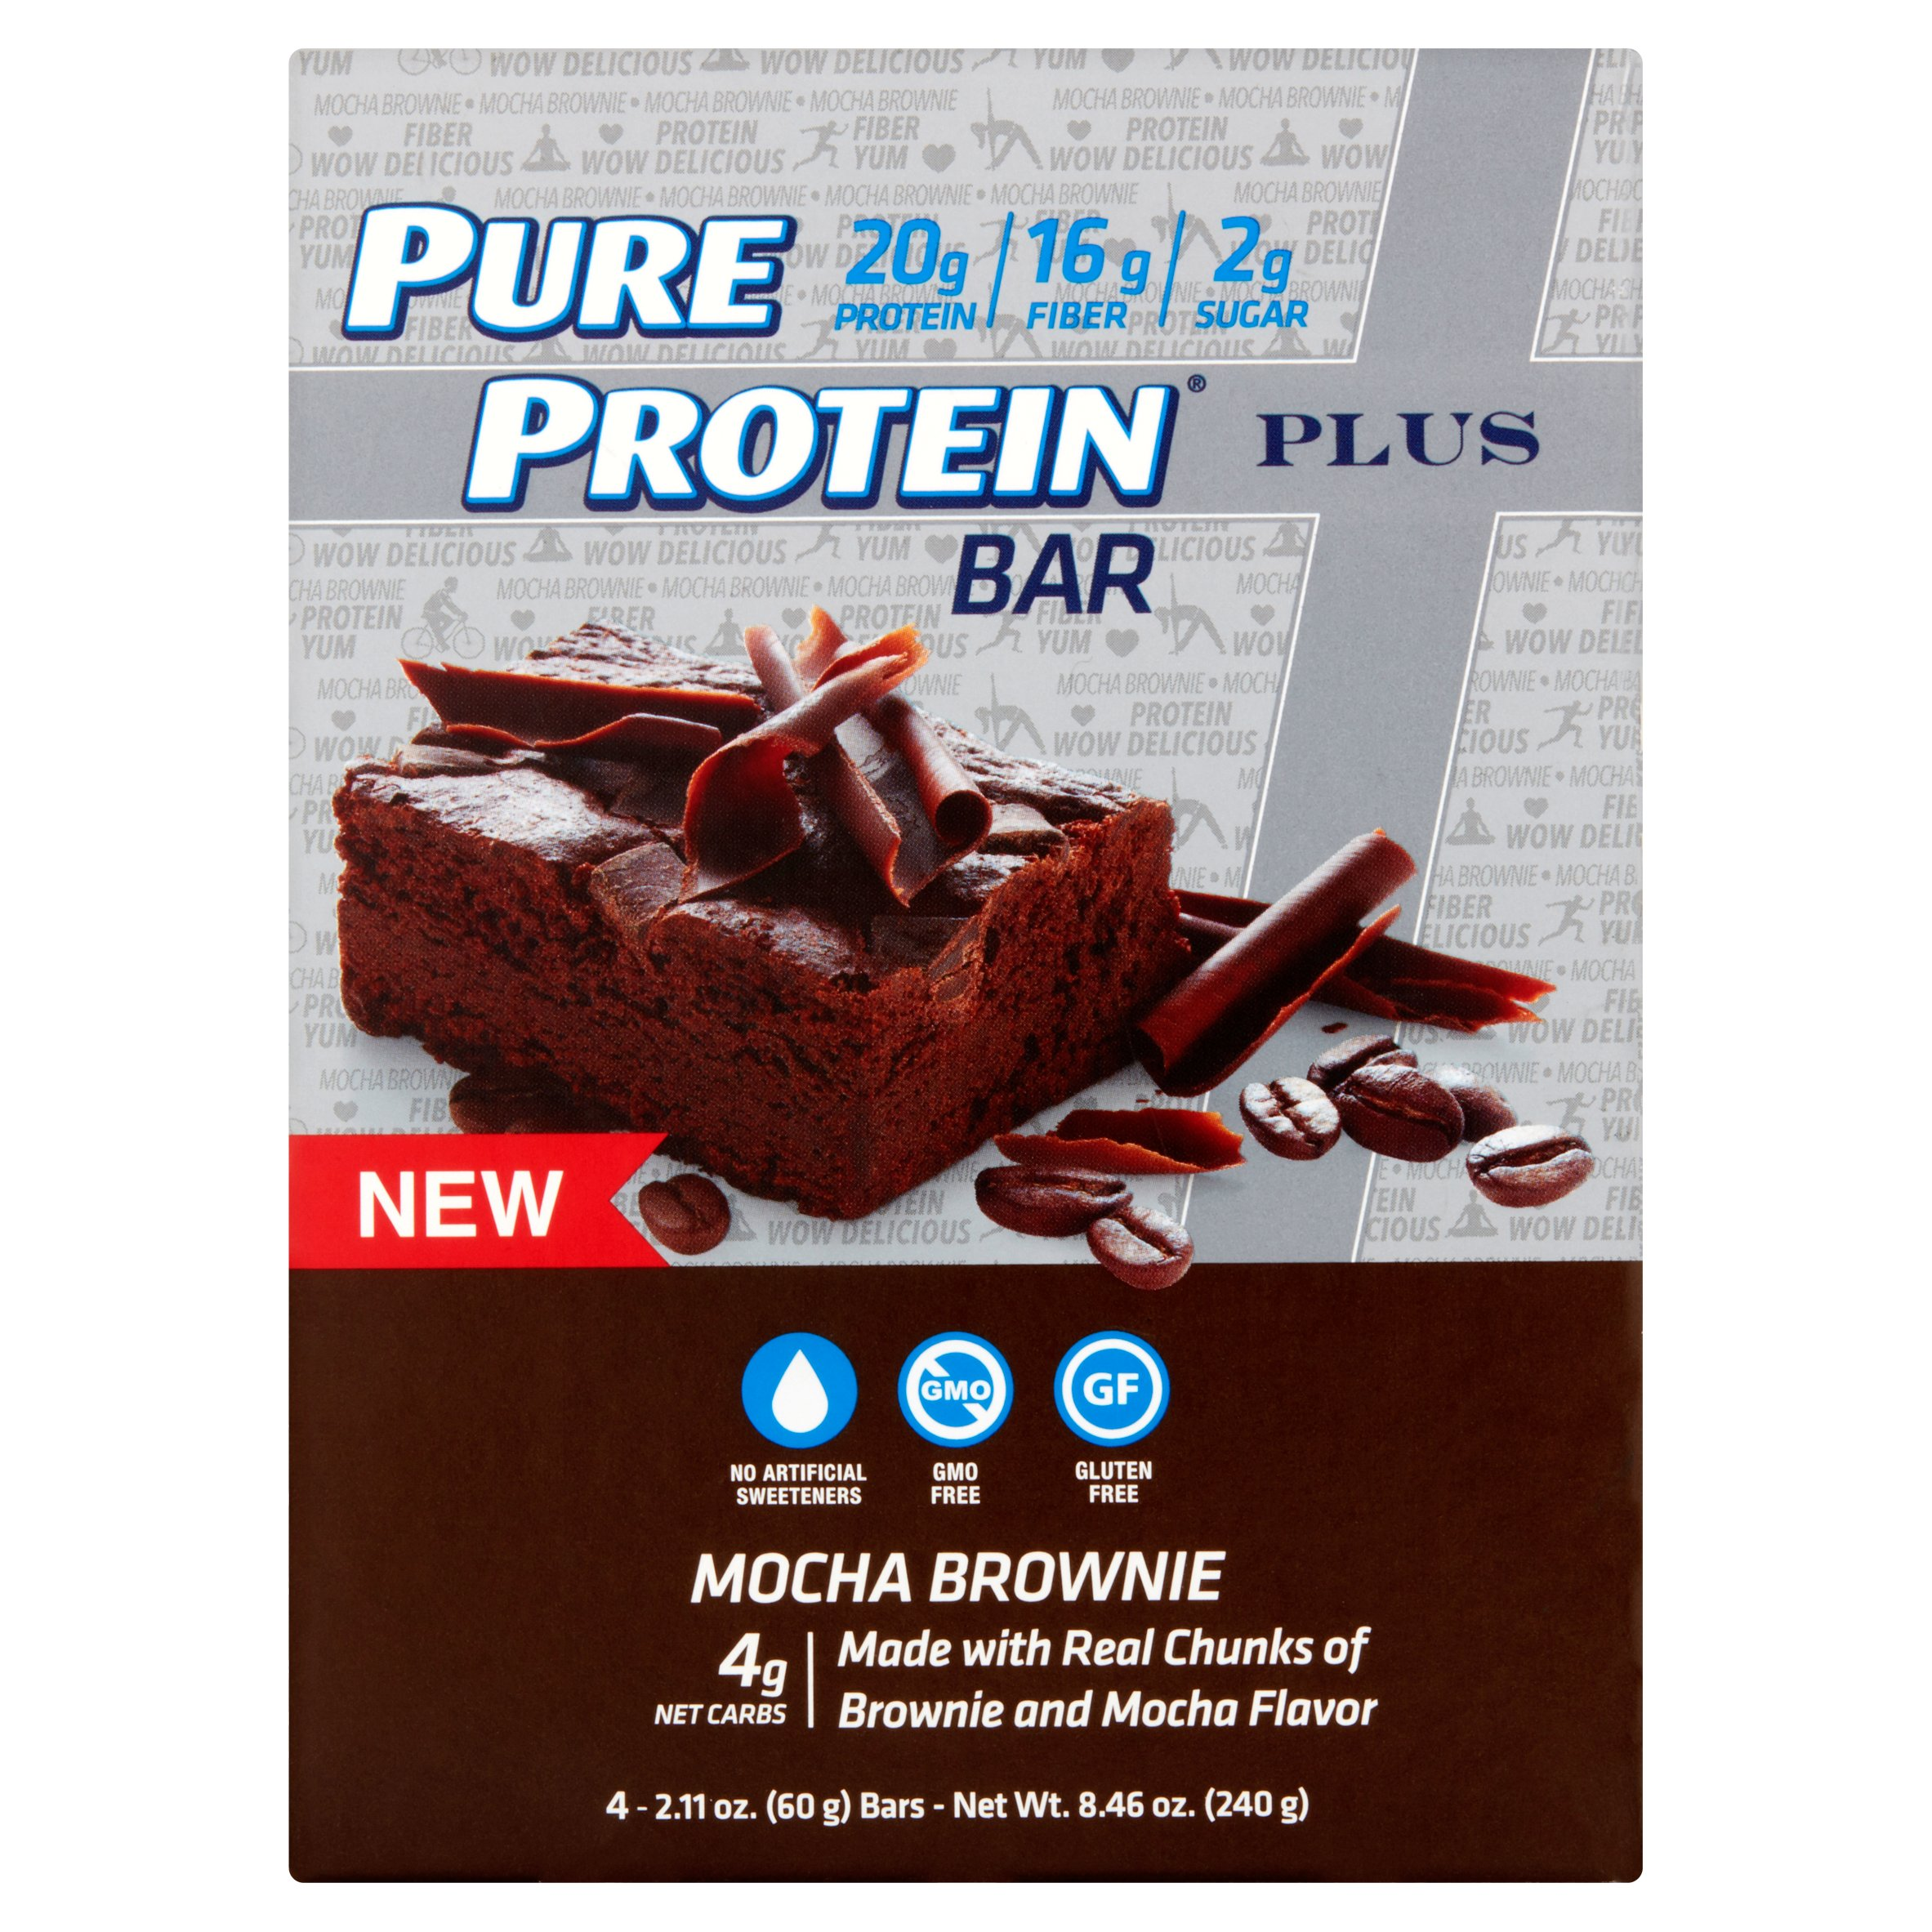 Pure Protein Bar, 20 Grams of Protein, Mocha Brownie, 2.11 Oz, 4 Ct